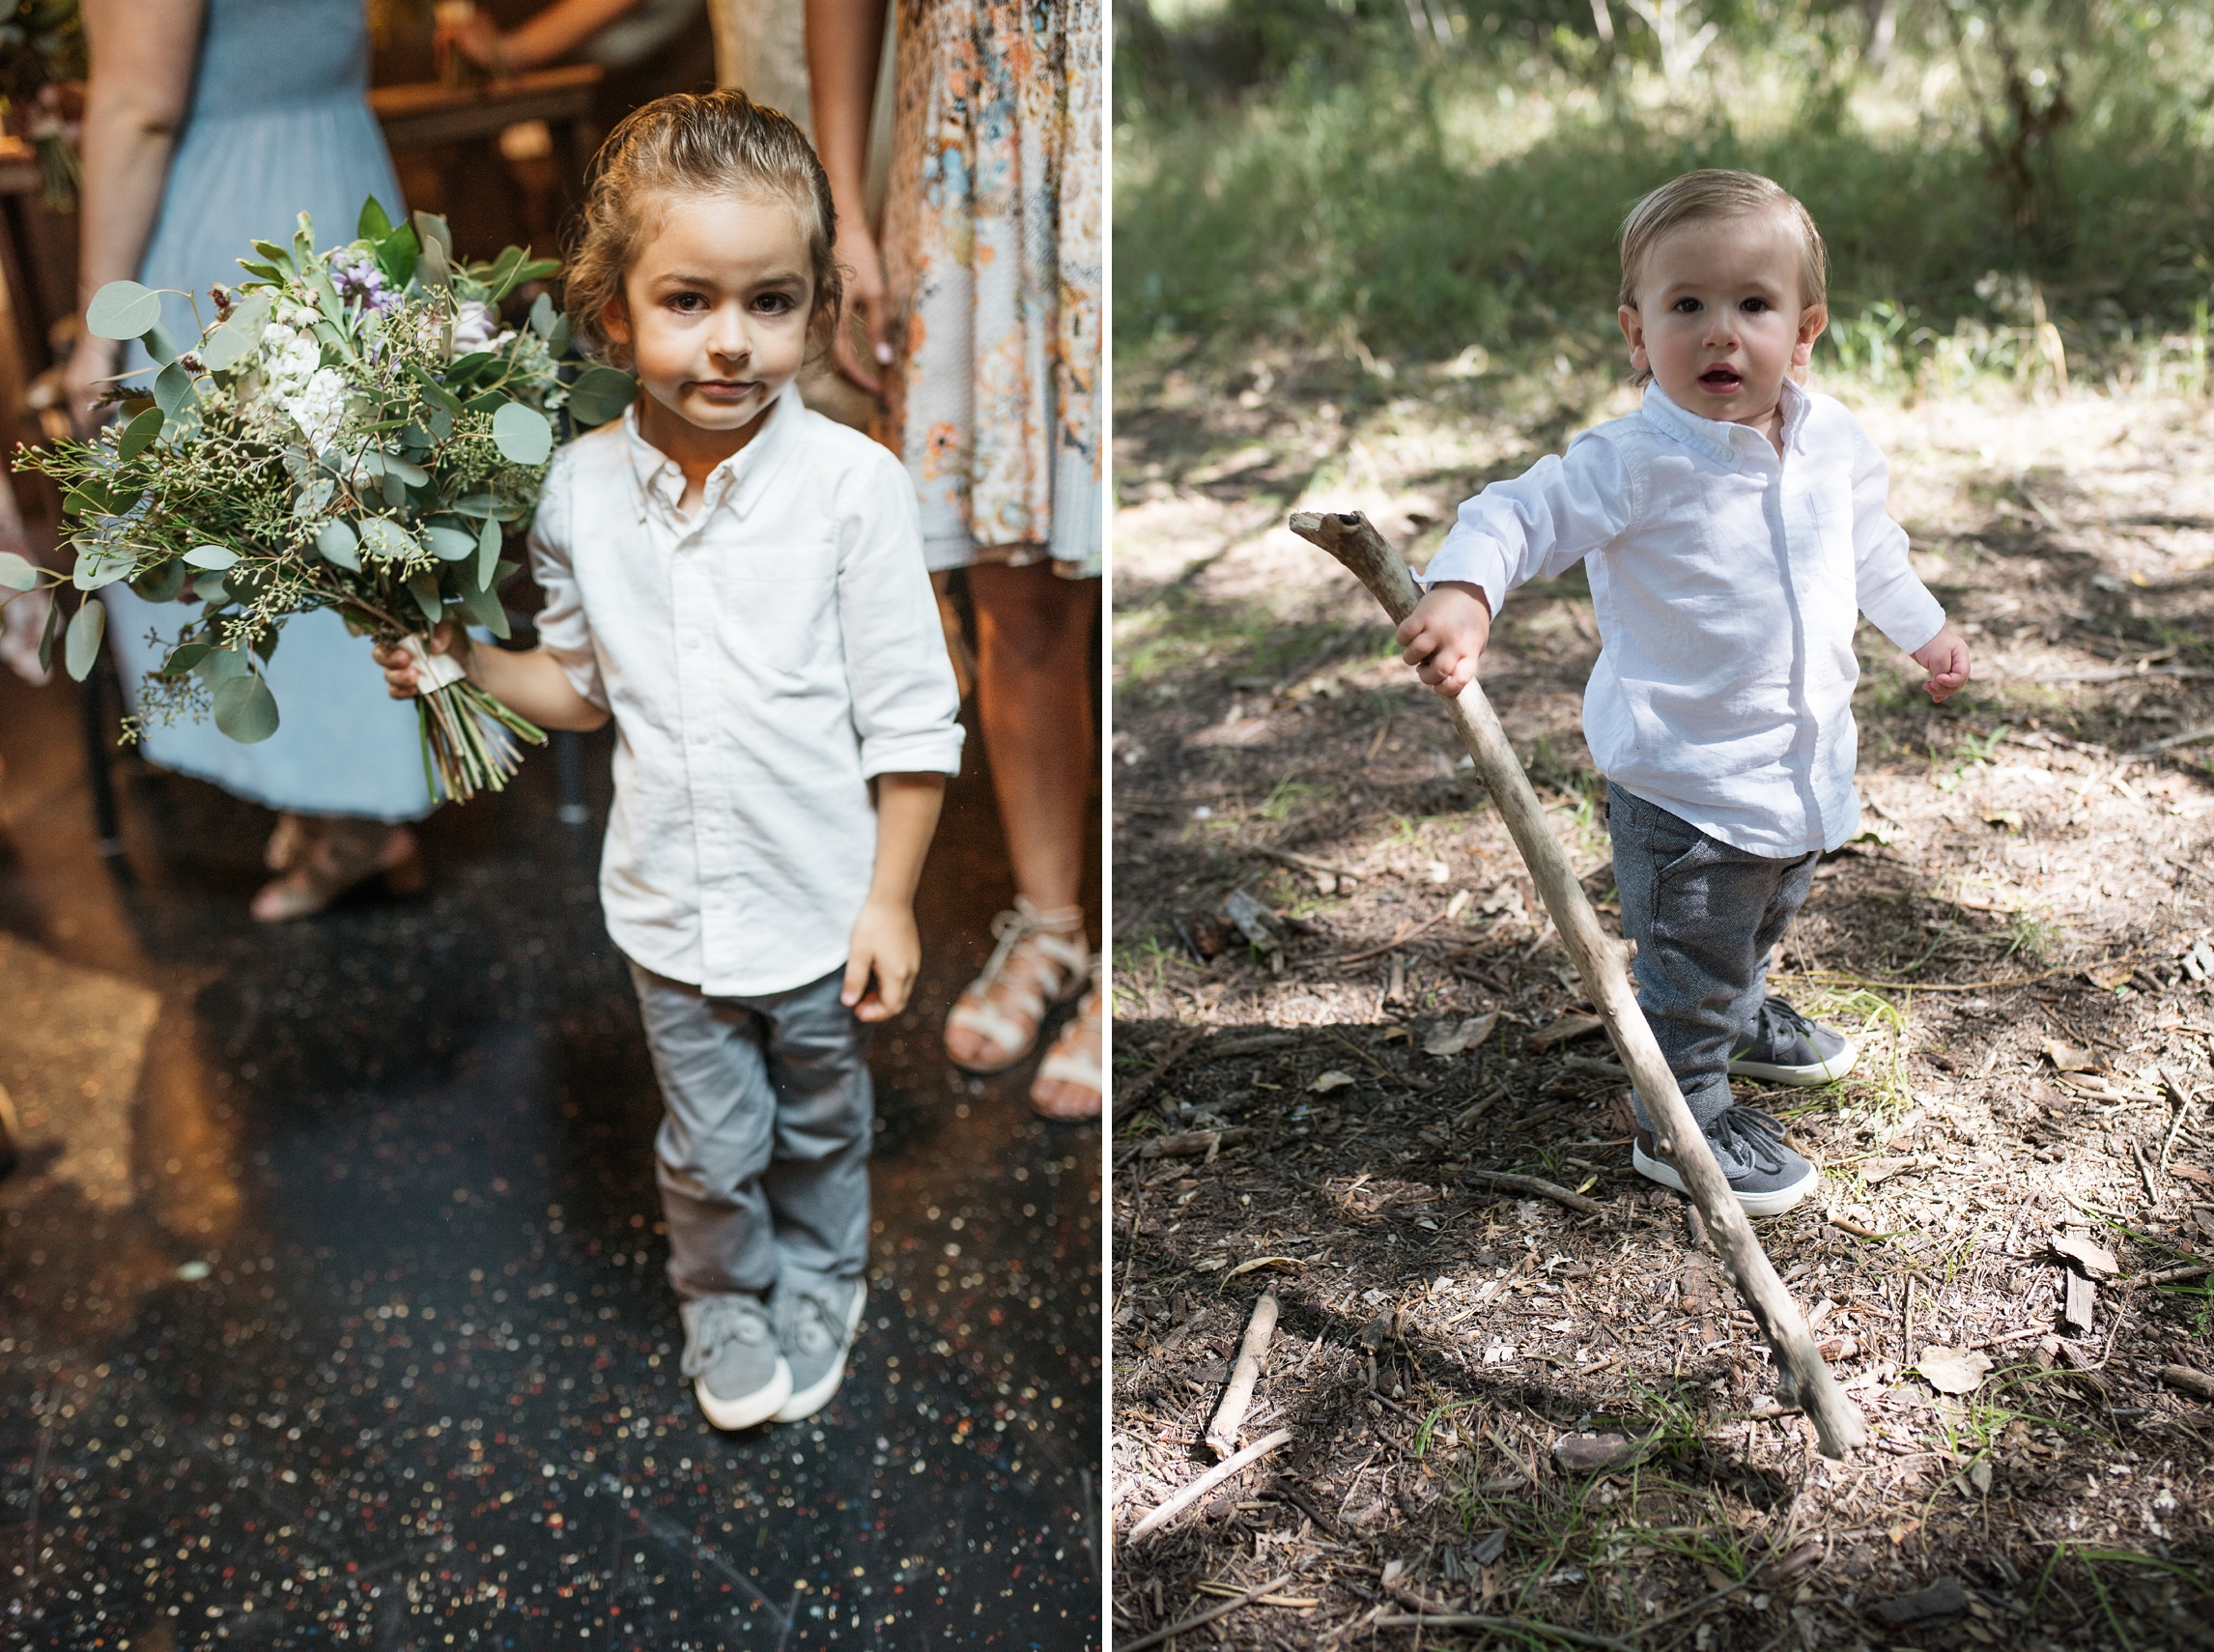 Adorable kids at an outdoor Colorado wedding in Old Town Fort Collins. Wedding photography by Sonja K Photography.